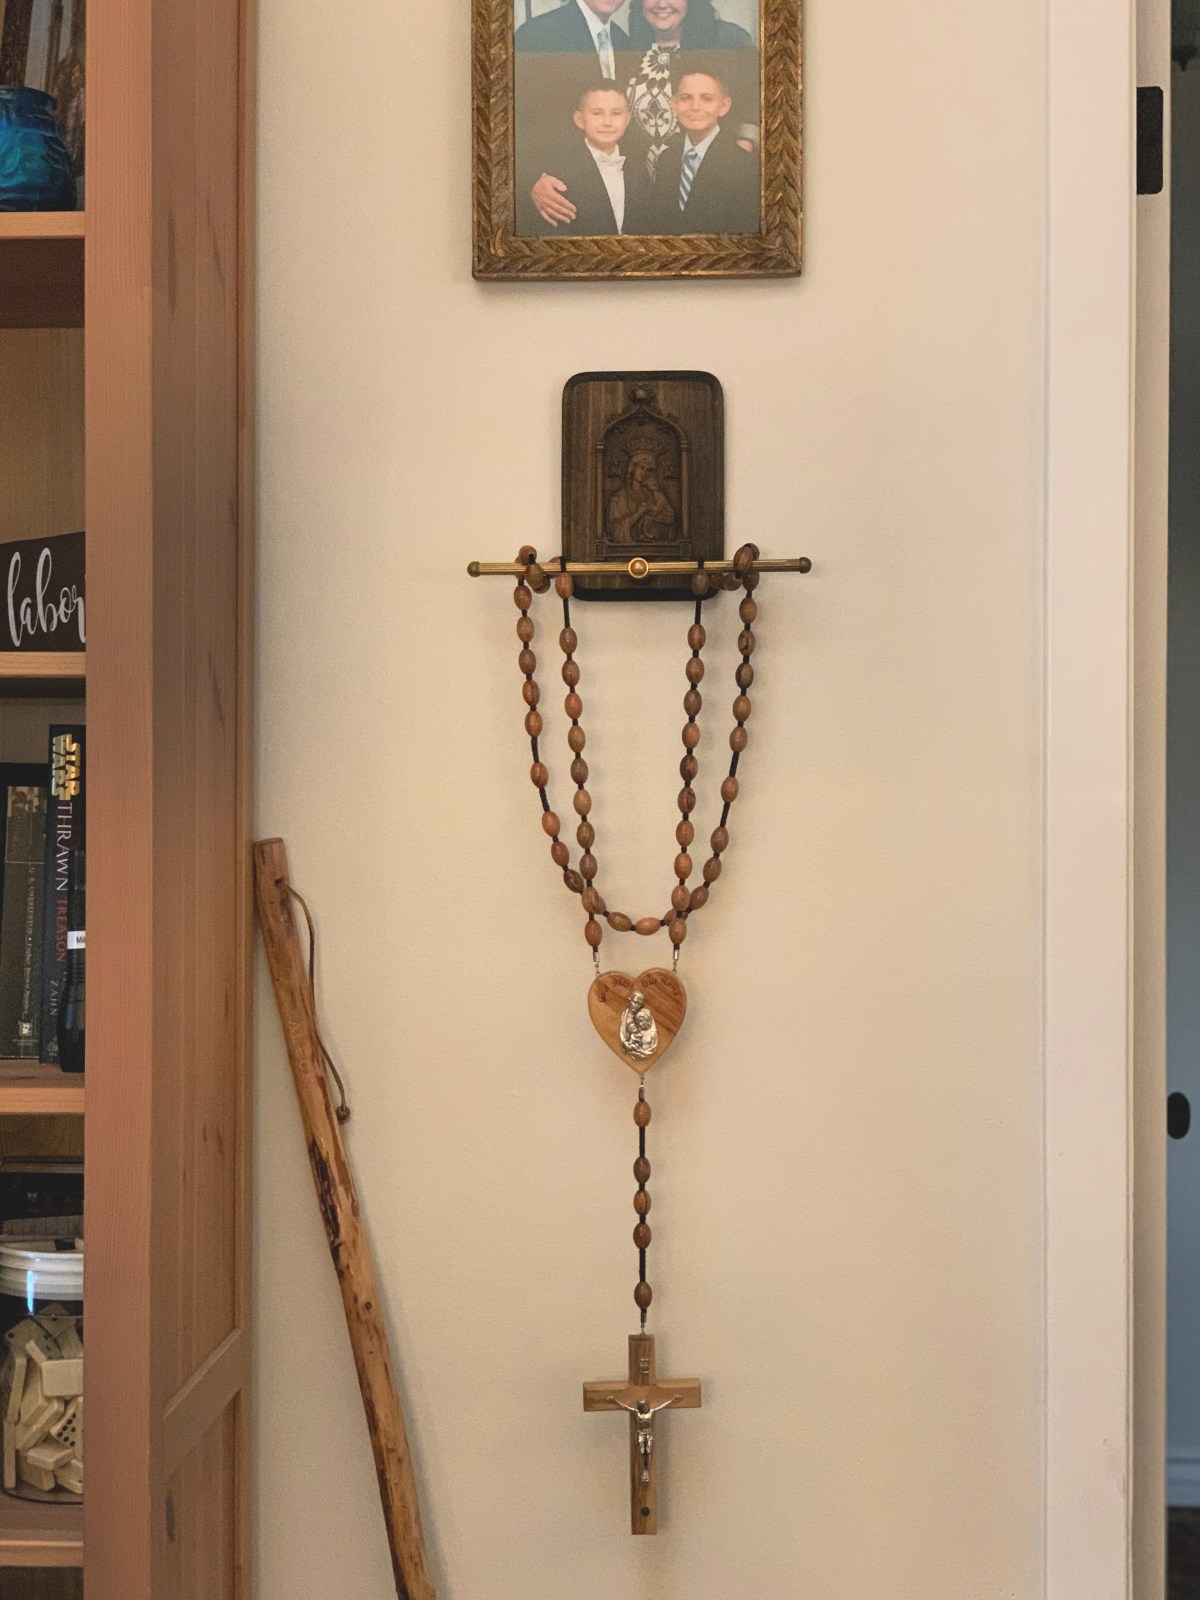 The art of risky decorating with a wall rosary holder with vintage Our Lady of Perpetual Help plaque.